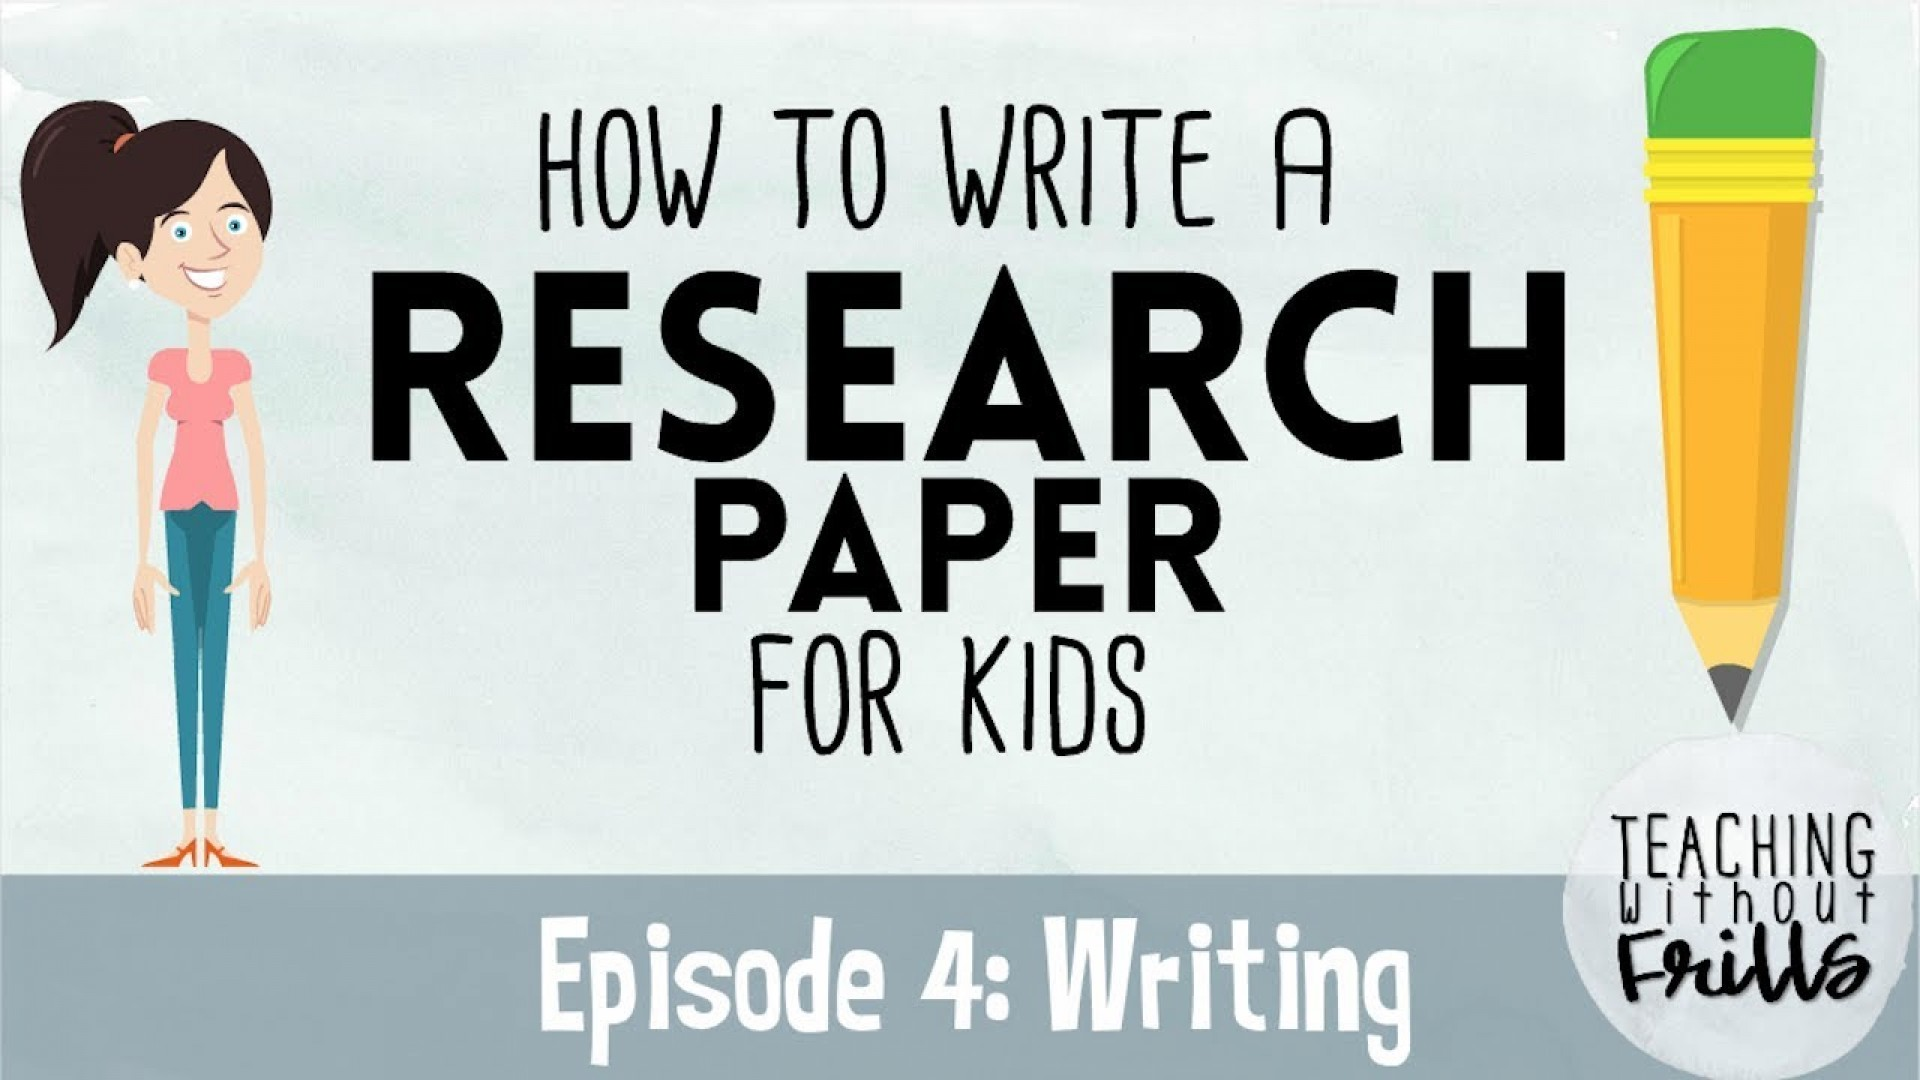 024 Research Paper How To Write Good Youtube Remarkable A In Apa Great 1920